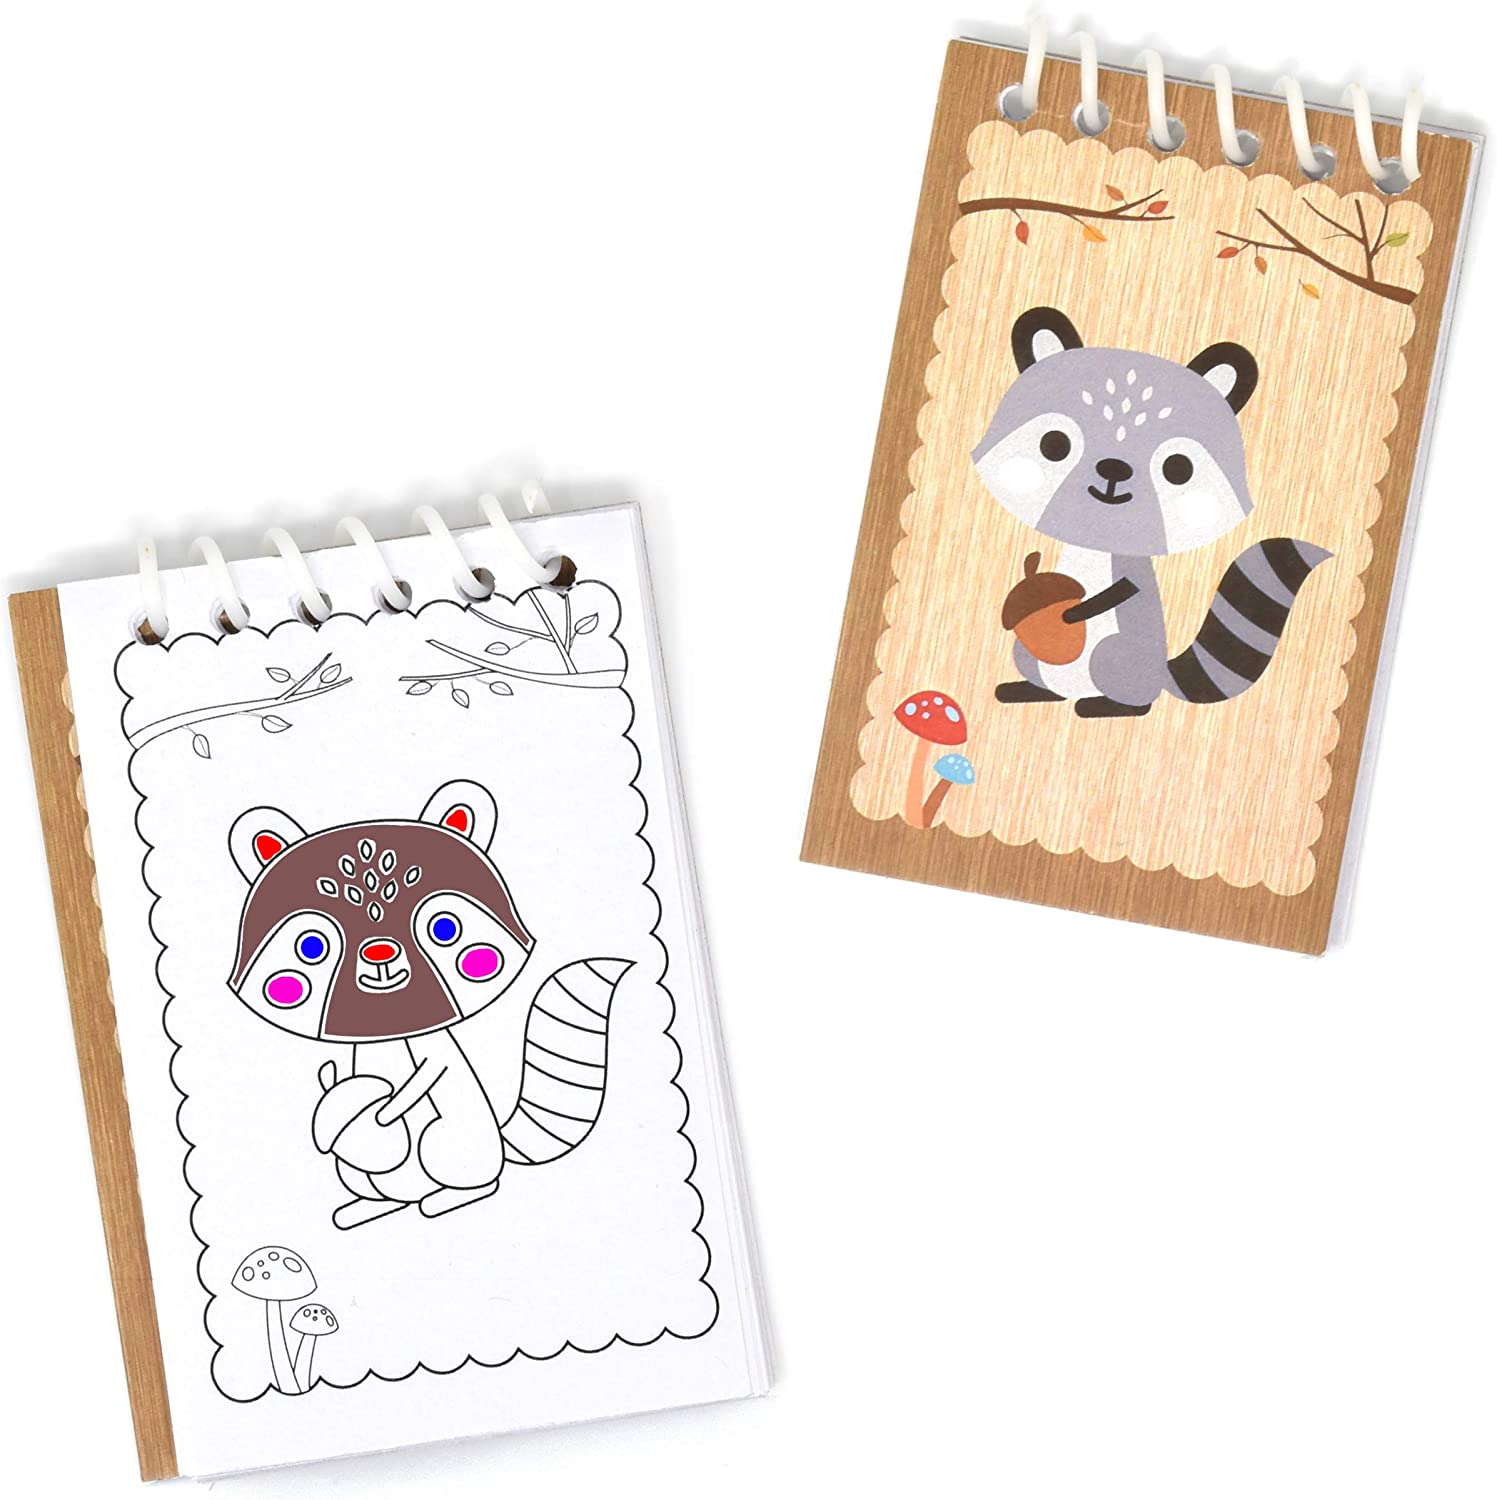 48 Count Woodland Animal Creatures Mini Notepads Forest Animals Themed Birthday Party Favor Supplies Decor Raccoon Squirrel Owl Rabbit Fox Deer Baby Shower Spiral Notebook for Kid Boy Girl Classroom